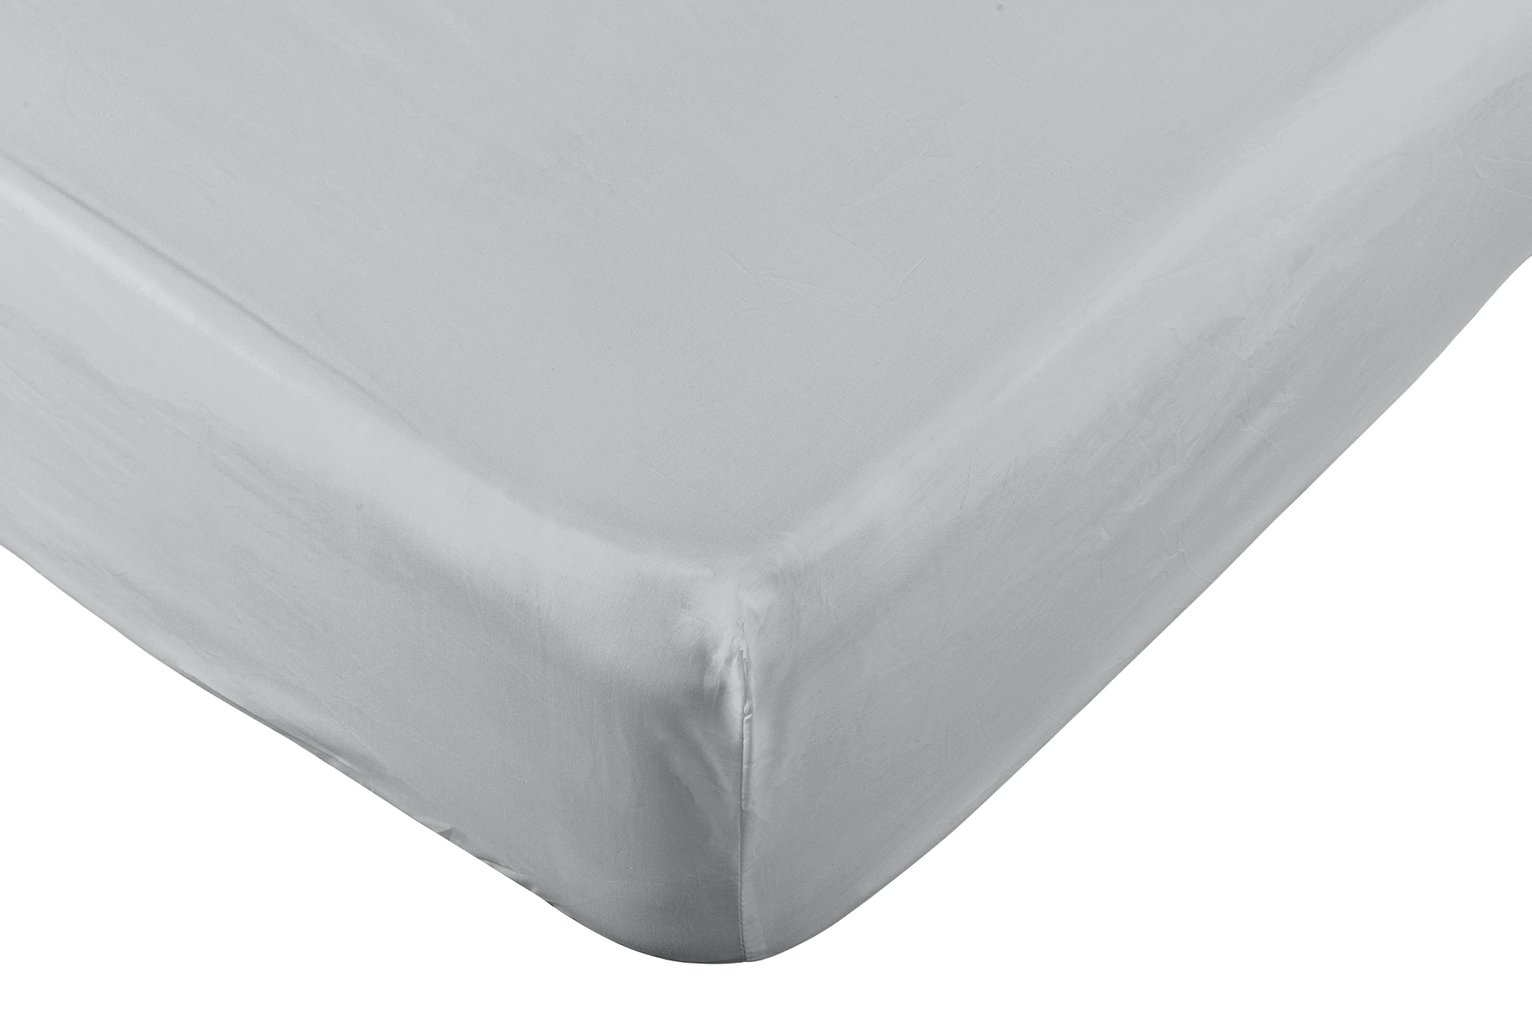 Argos Home 200 TC Grey Fitted Sheet - Superking